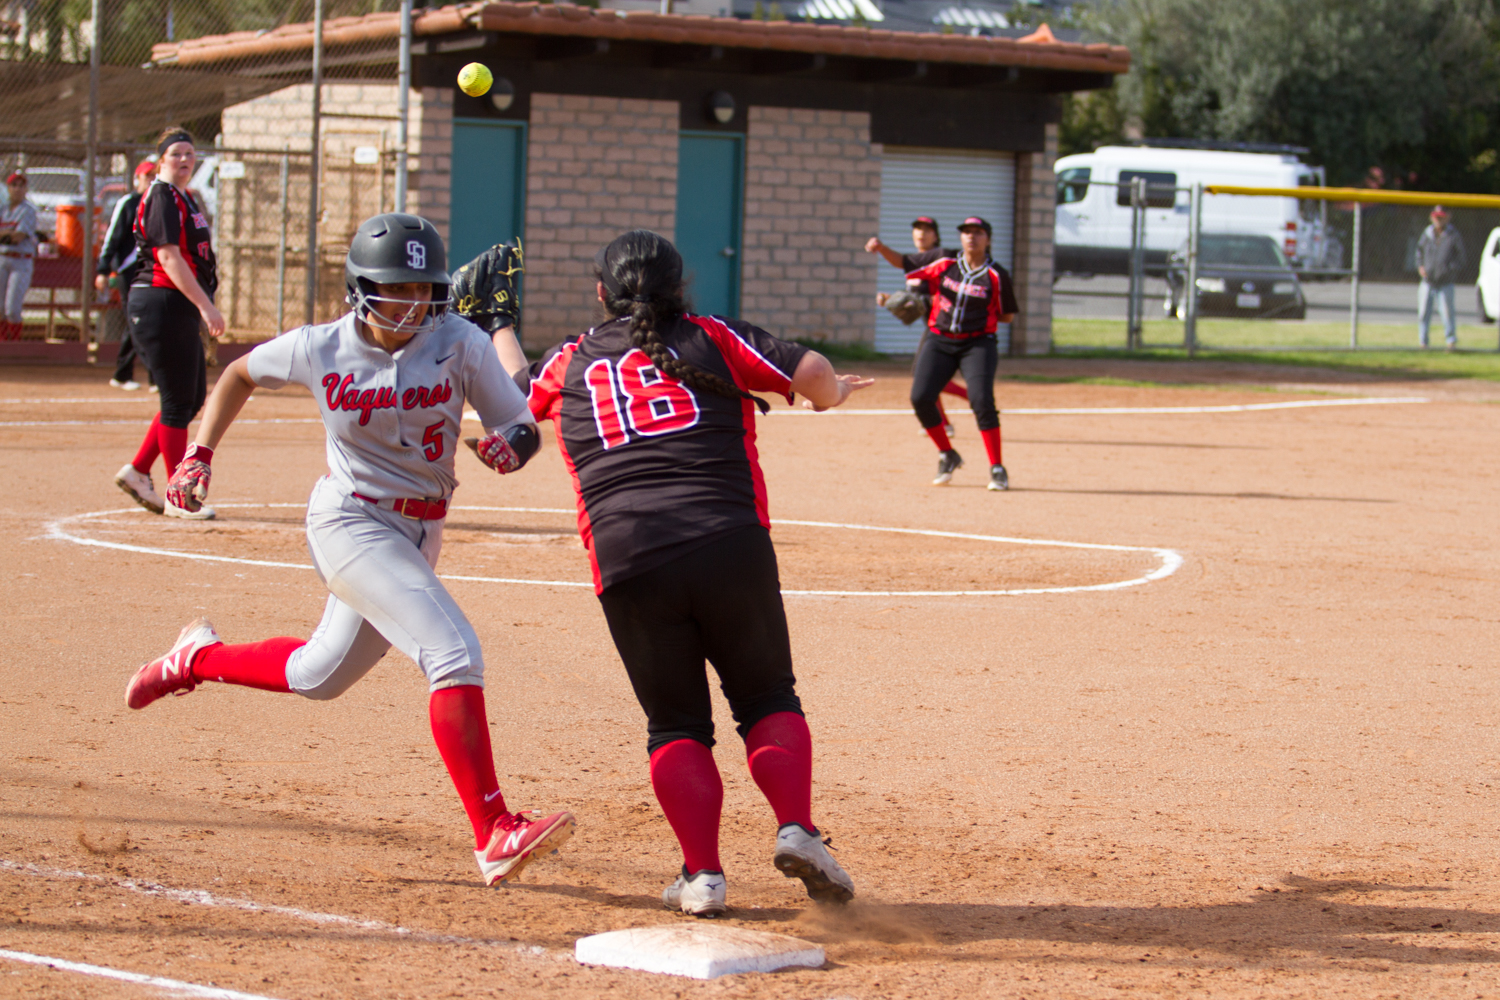 Vaquero Emily LoneTree (No. 5) hustles down the first base line for an infield hit against L.A. Pierce on Friday, March 22, 2019, at Pershing Park in Santa Barbara, Calif. The Vaqueros defeated L.A. Pierce 8-0.